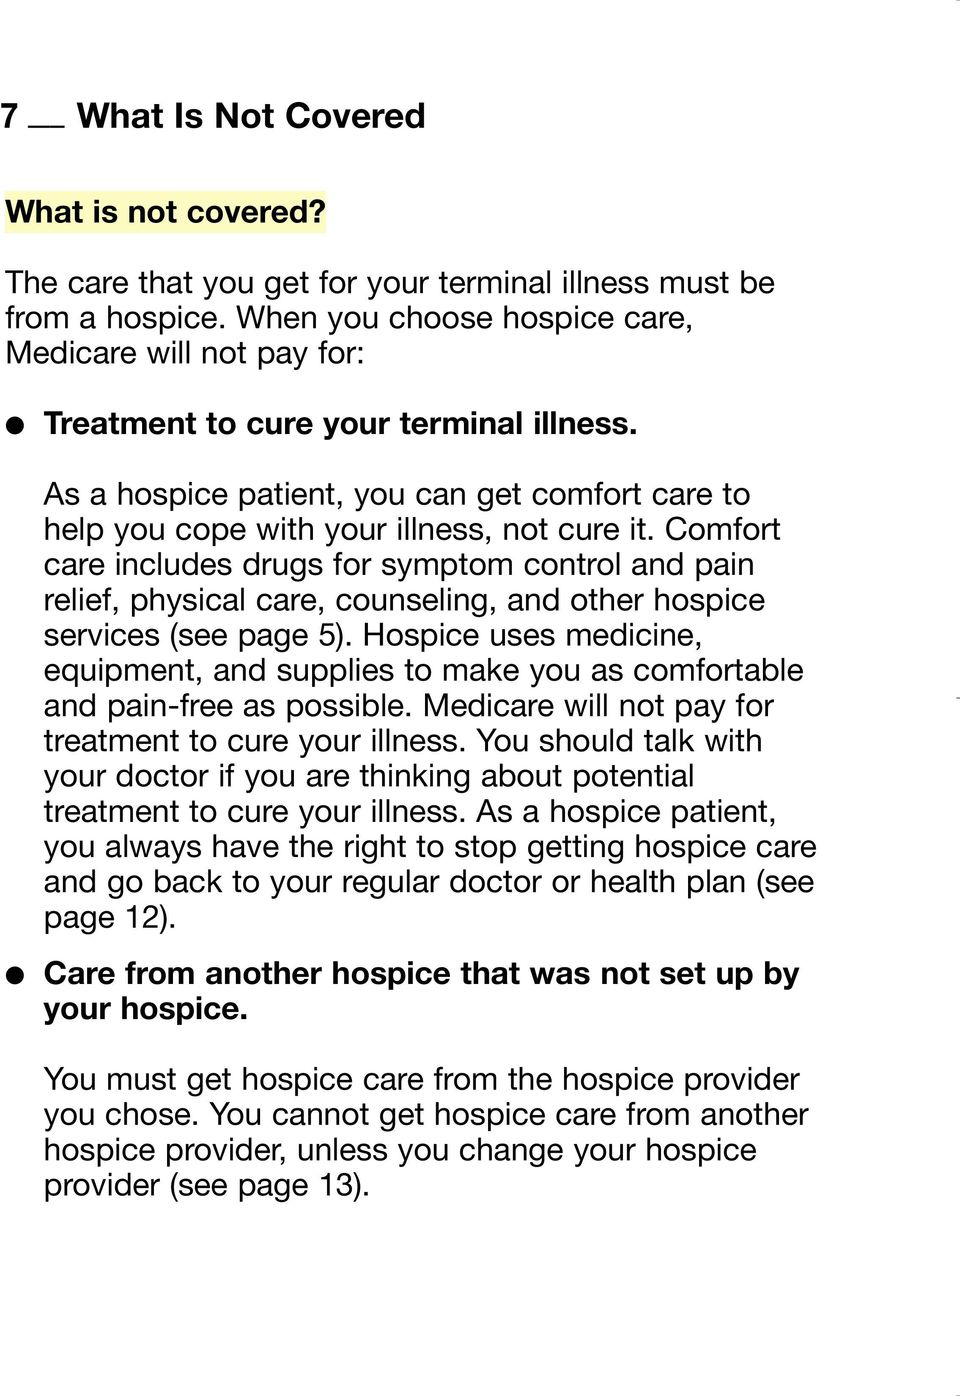 Comfort care includes drugs for symptom control and pain relief, physical care, counseling, and other hospice services (see page 5).